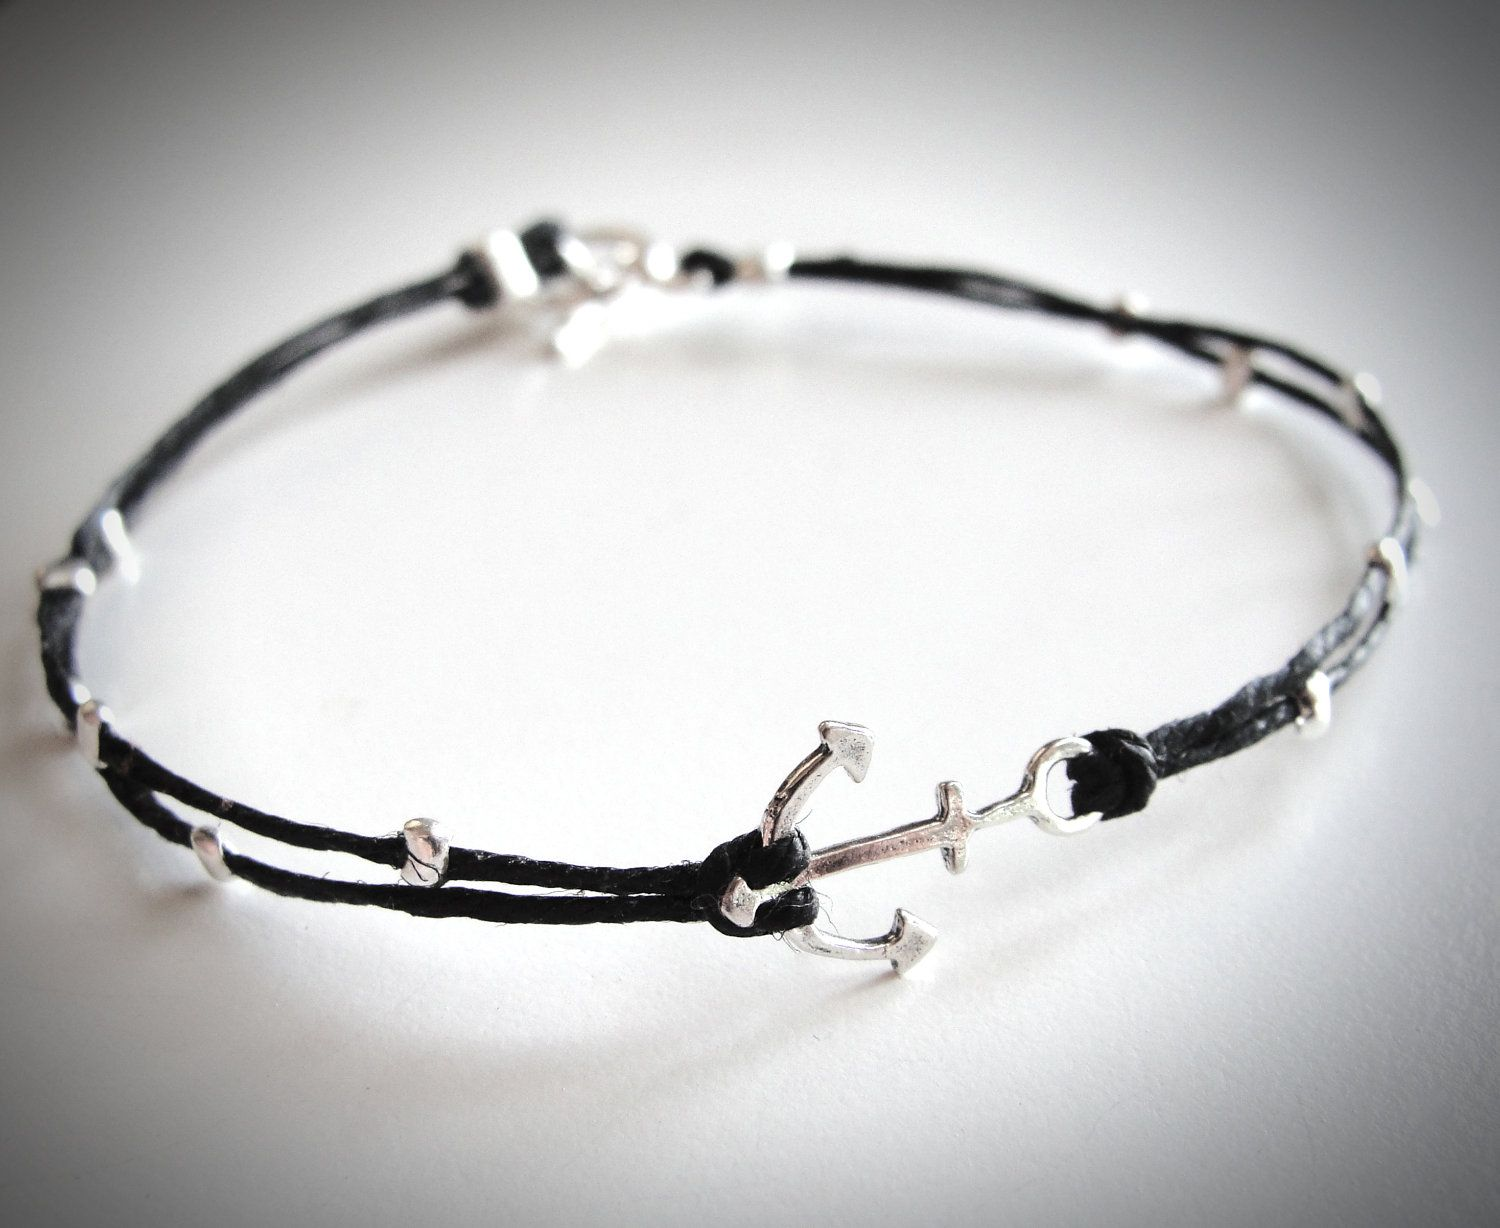 Tiny Sterling Anchor bracelet on black linen. $22 from JewelryByMaeBee on Etsy.